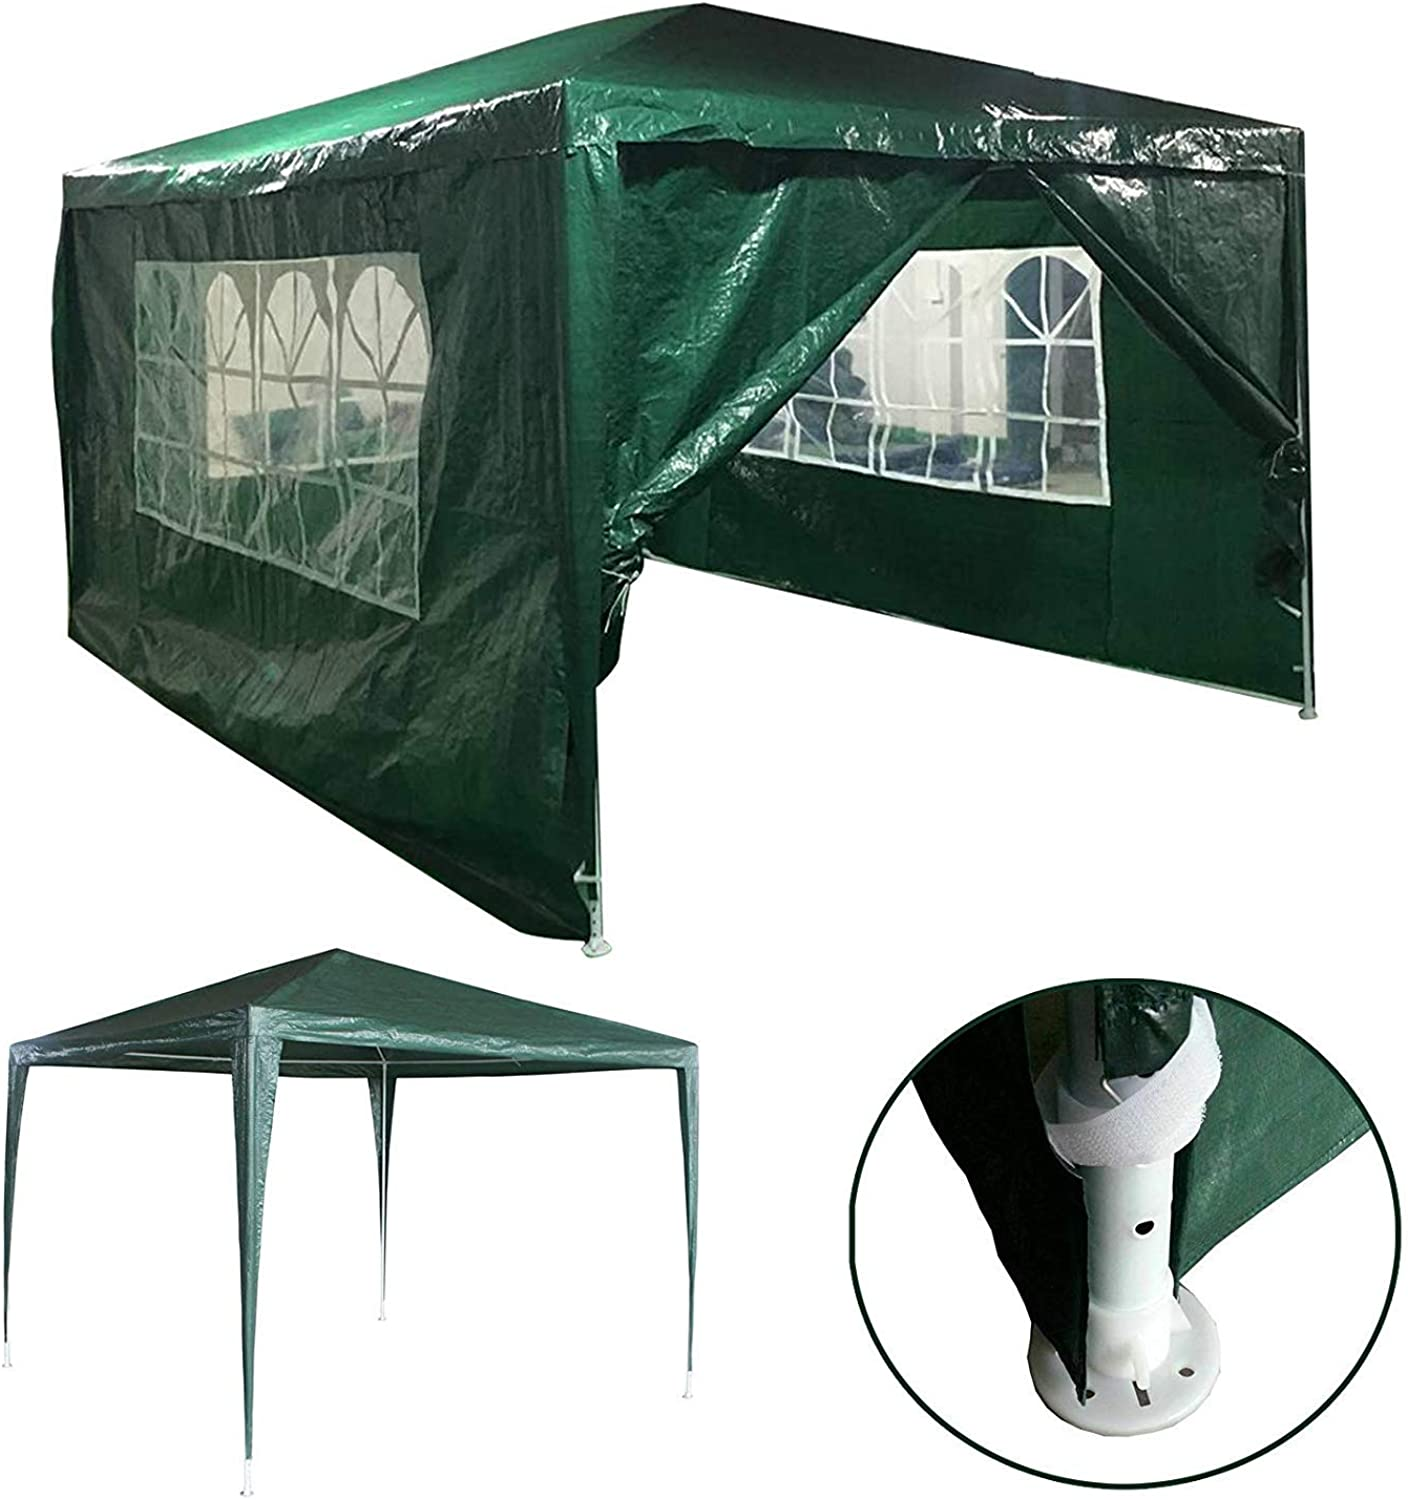 Green Gazebo  3X4M with Sides Panels Removable Steel Frame Polyethylene Cover Shelter UV Predection Waterproof Party Tent